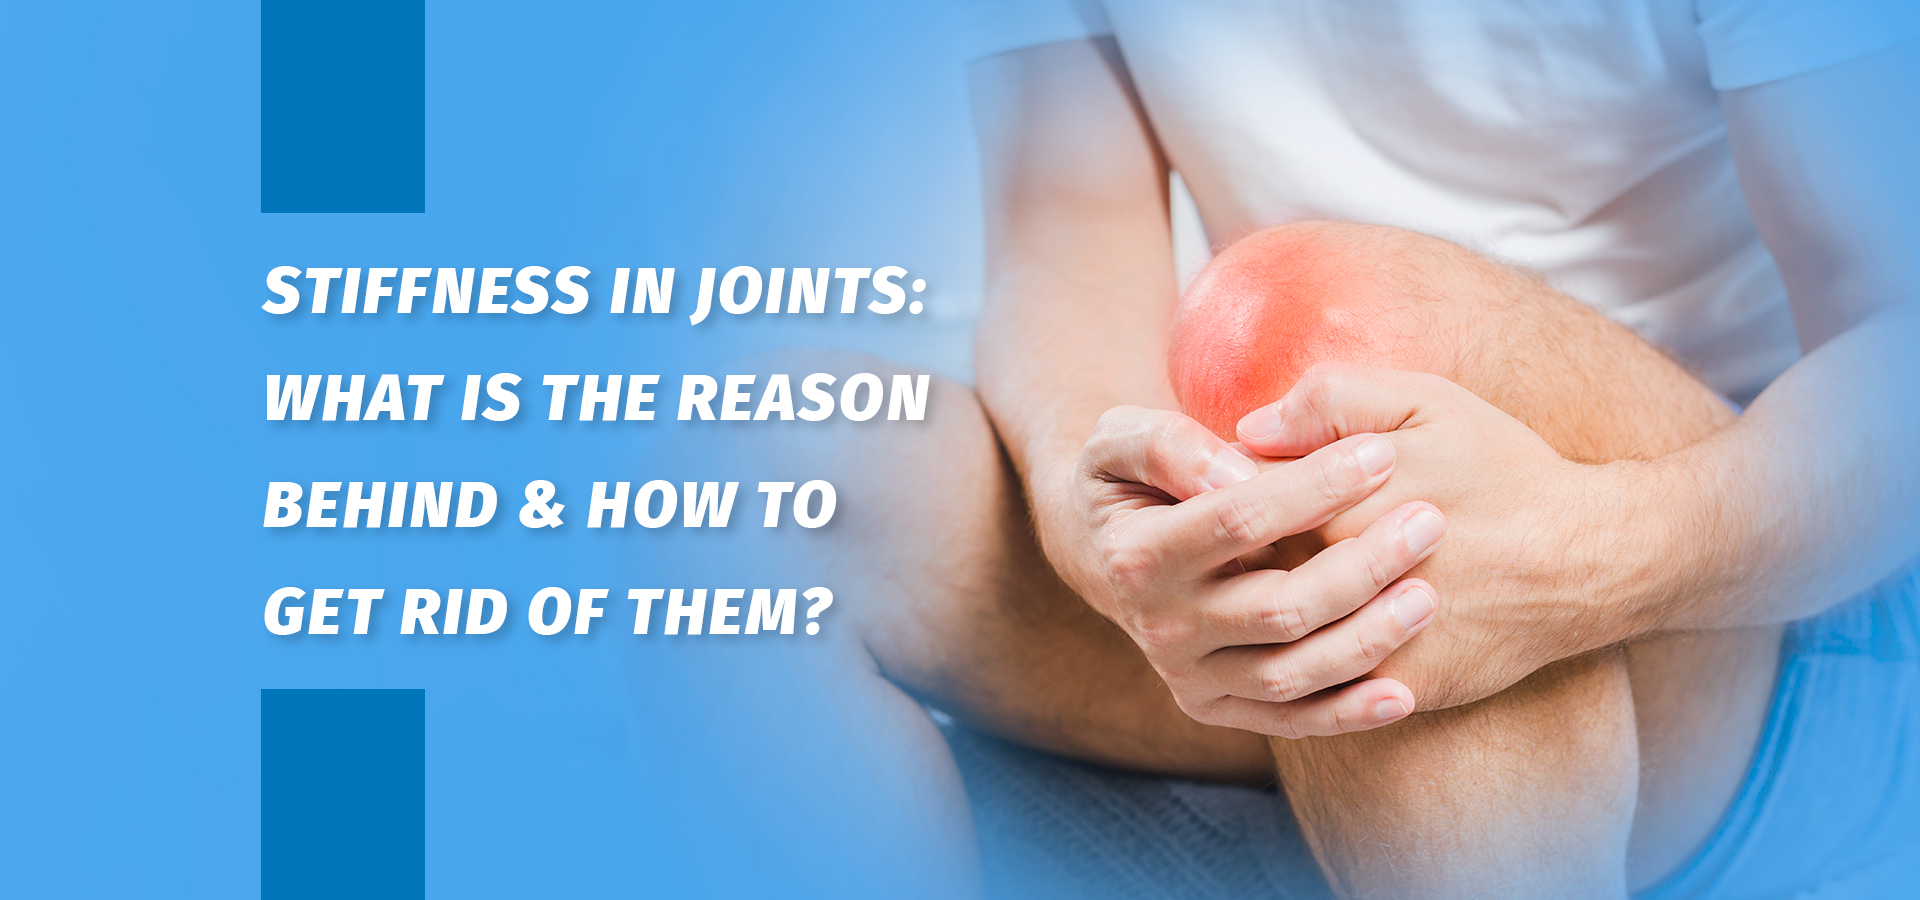 Stiffness in joints